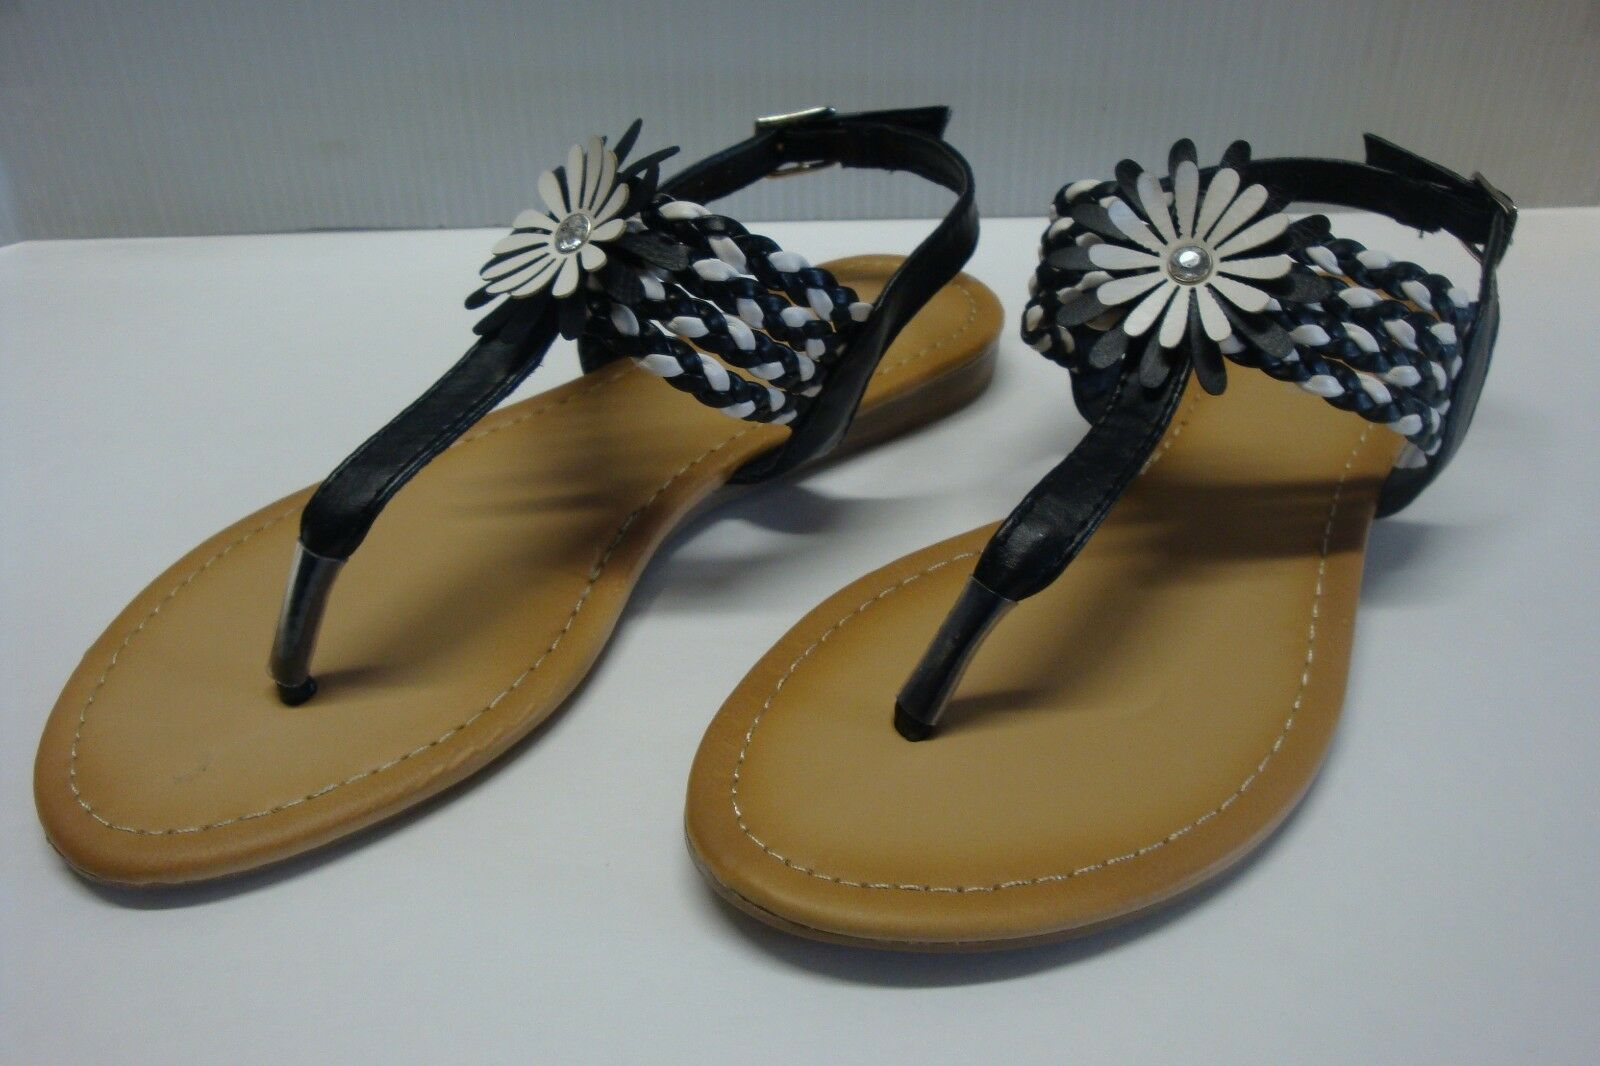 Women's Sandals T-Strap Flat Thong Fashion Sandals Women's Shoes 594b74